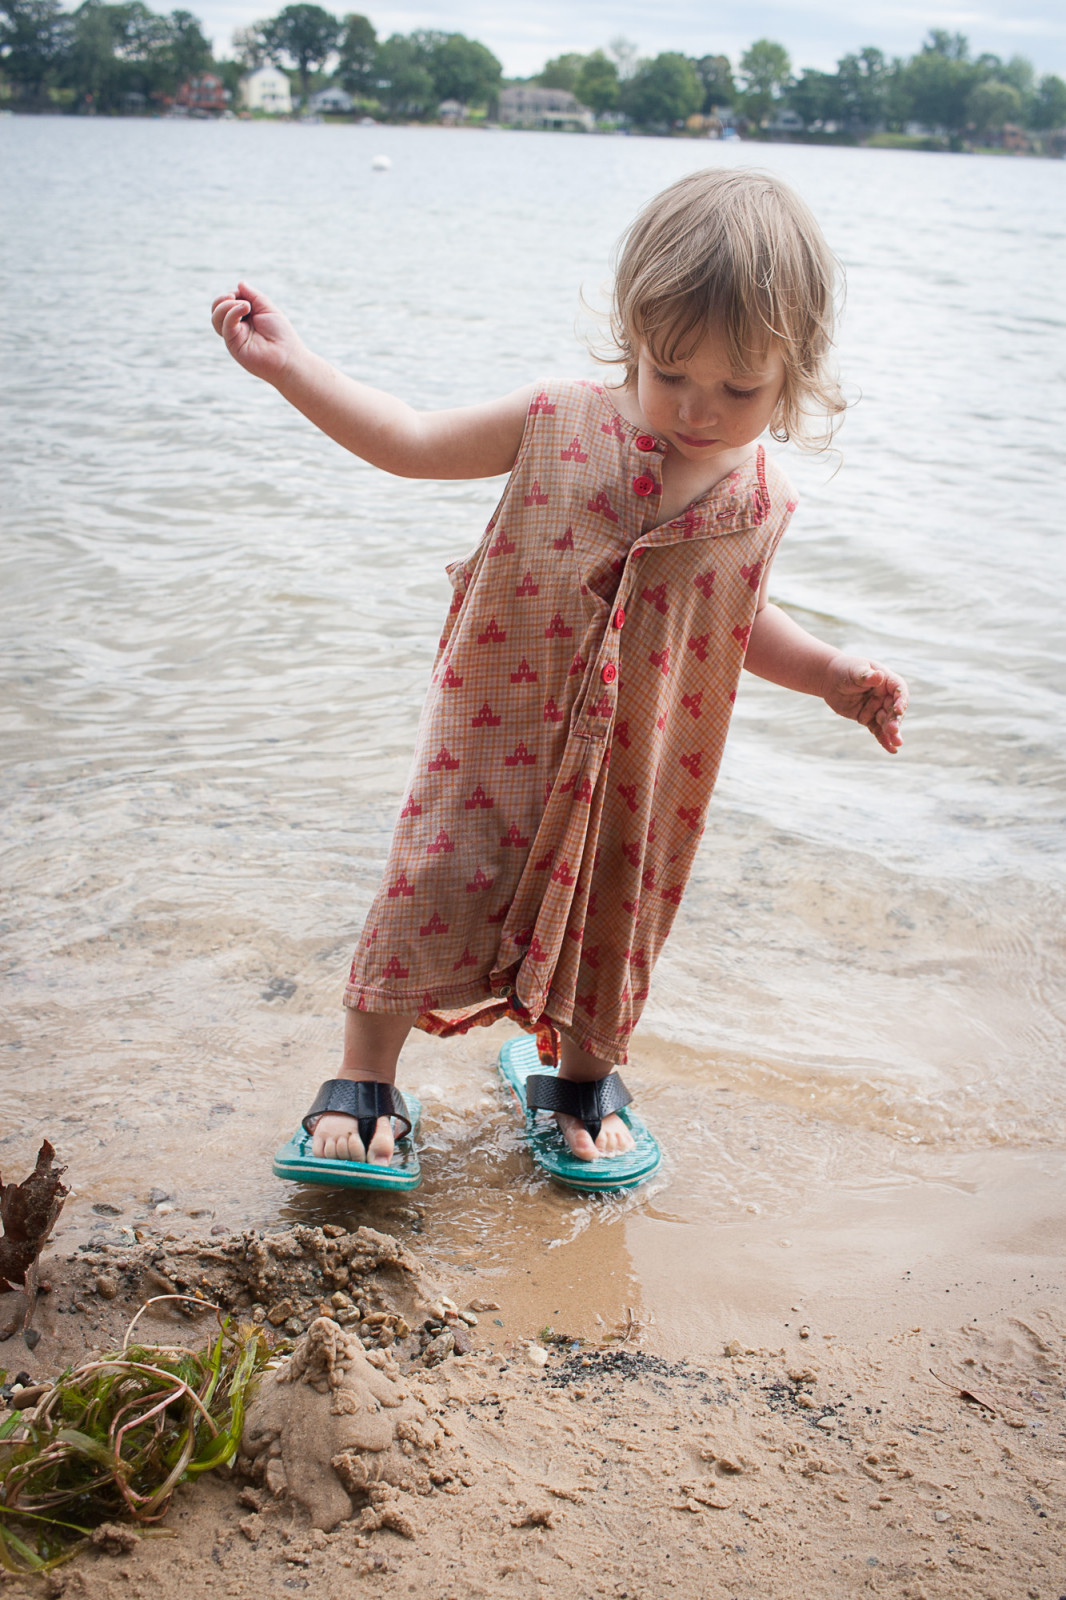 A girl on the edge of a beach, facing the camera, wearing flip flop shoes which are too large for her